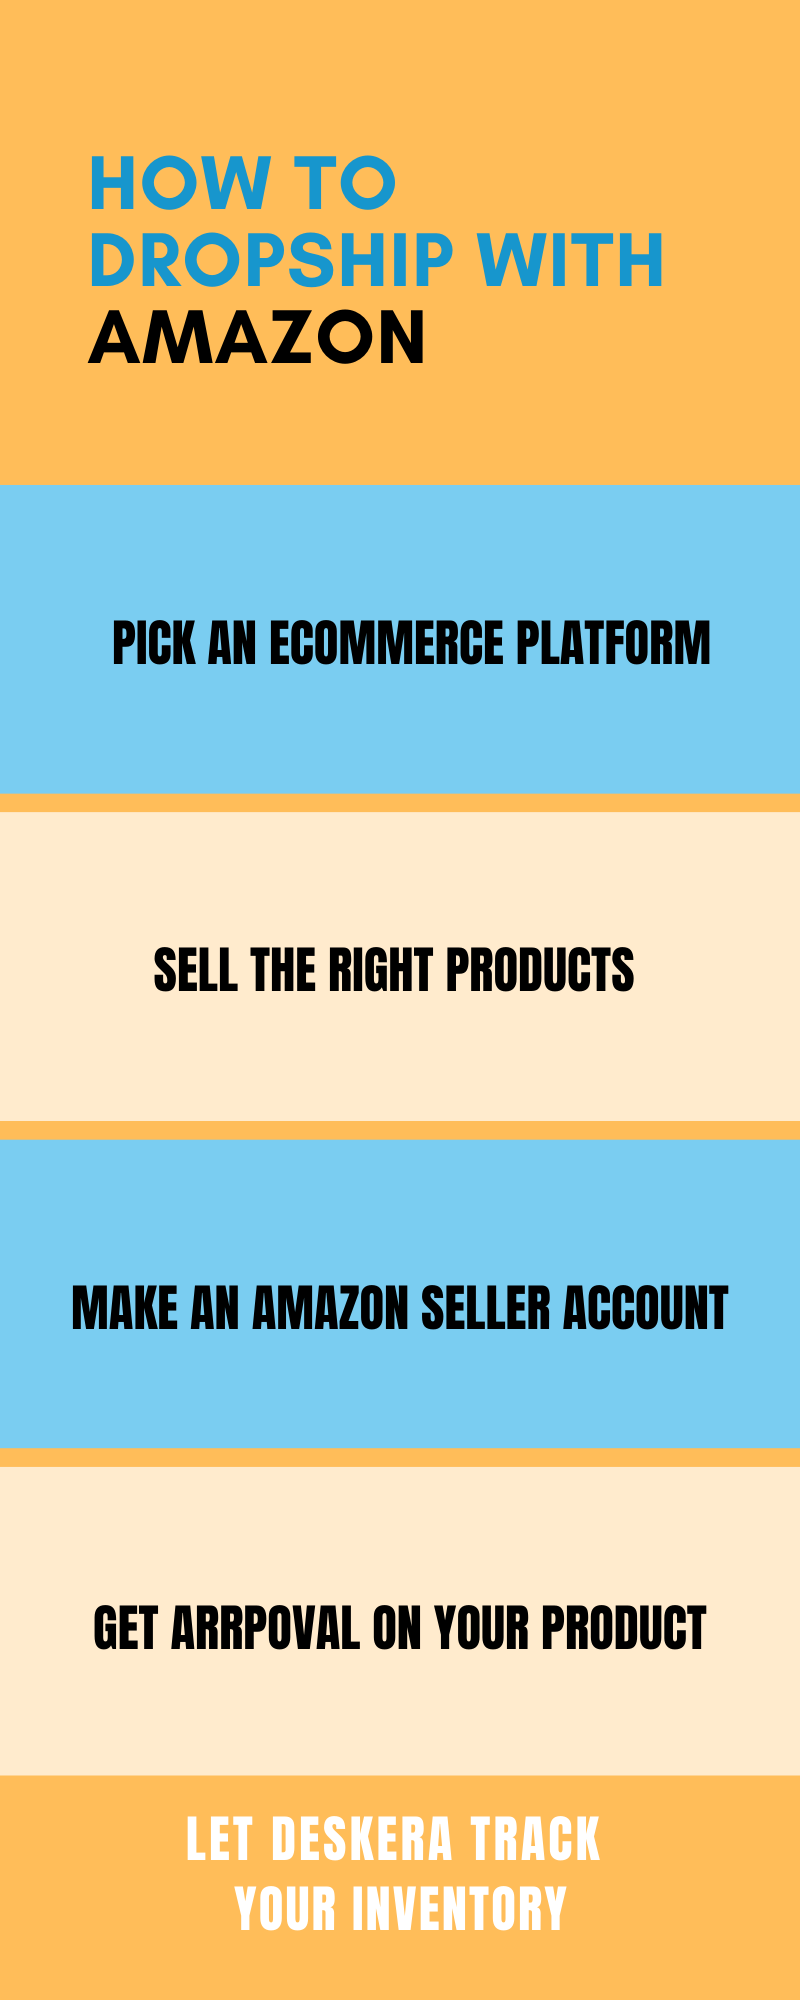 How to dropship with Amazon